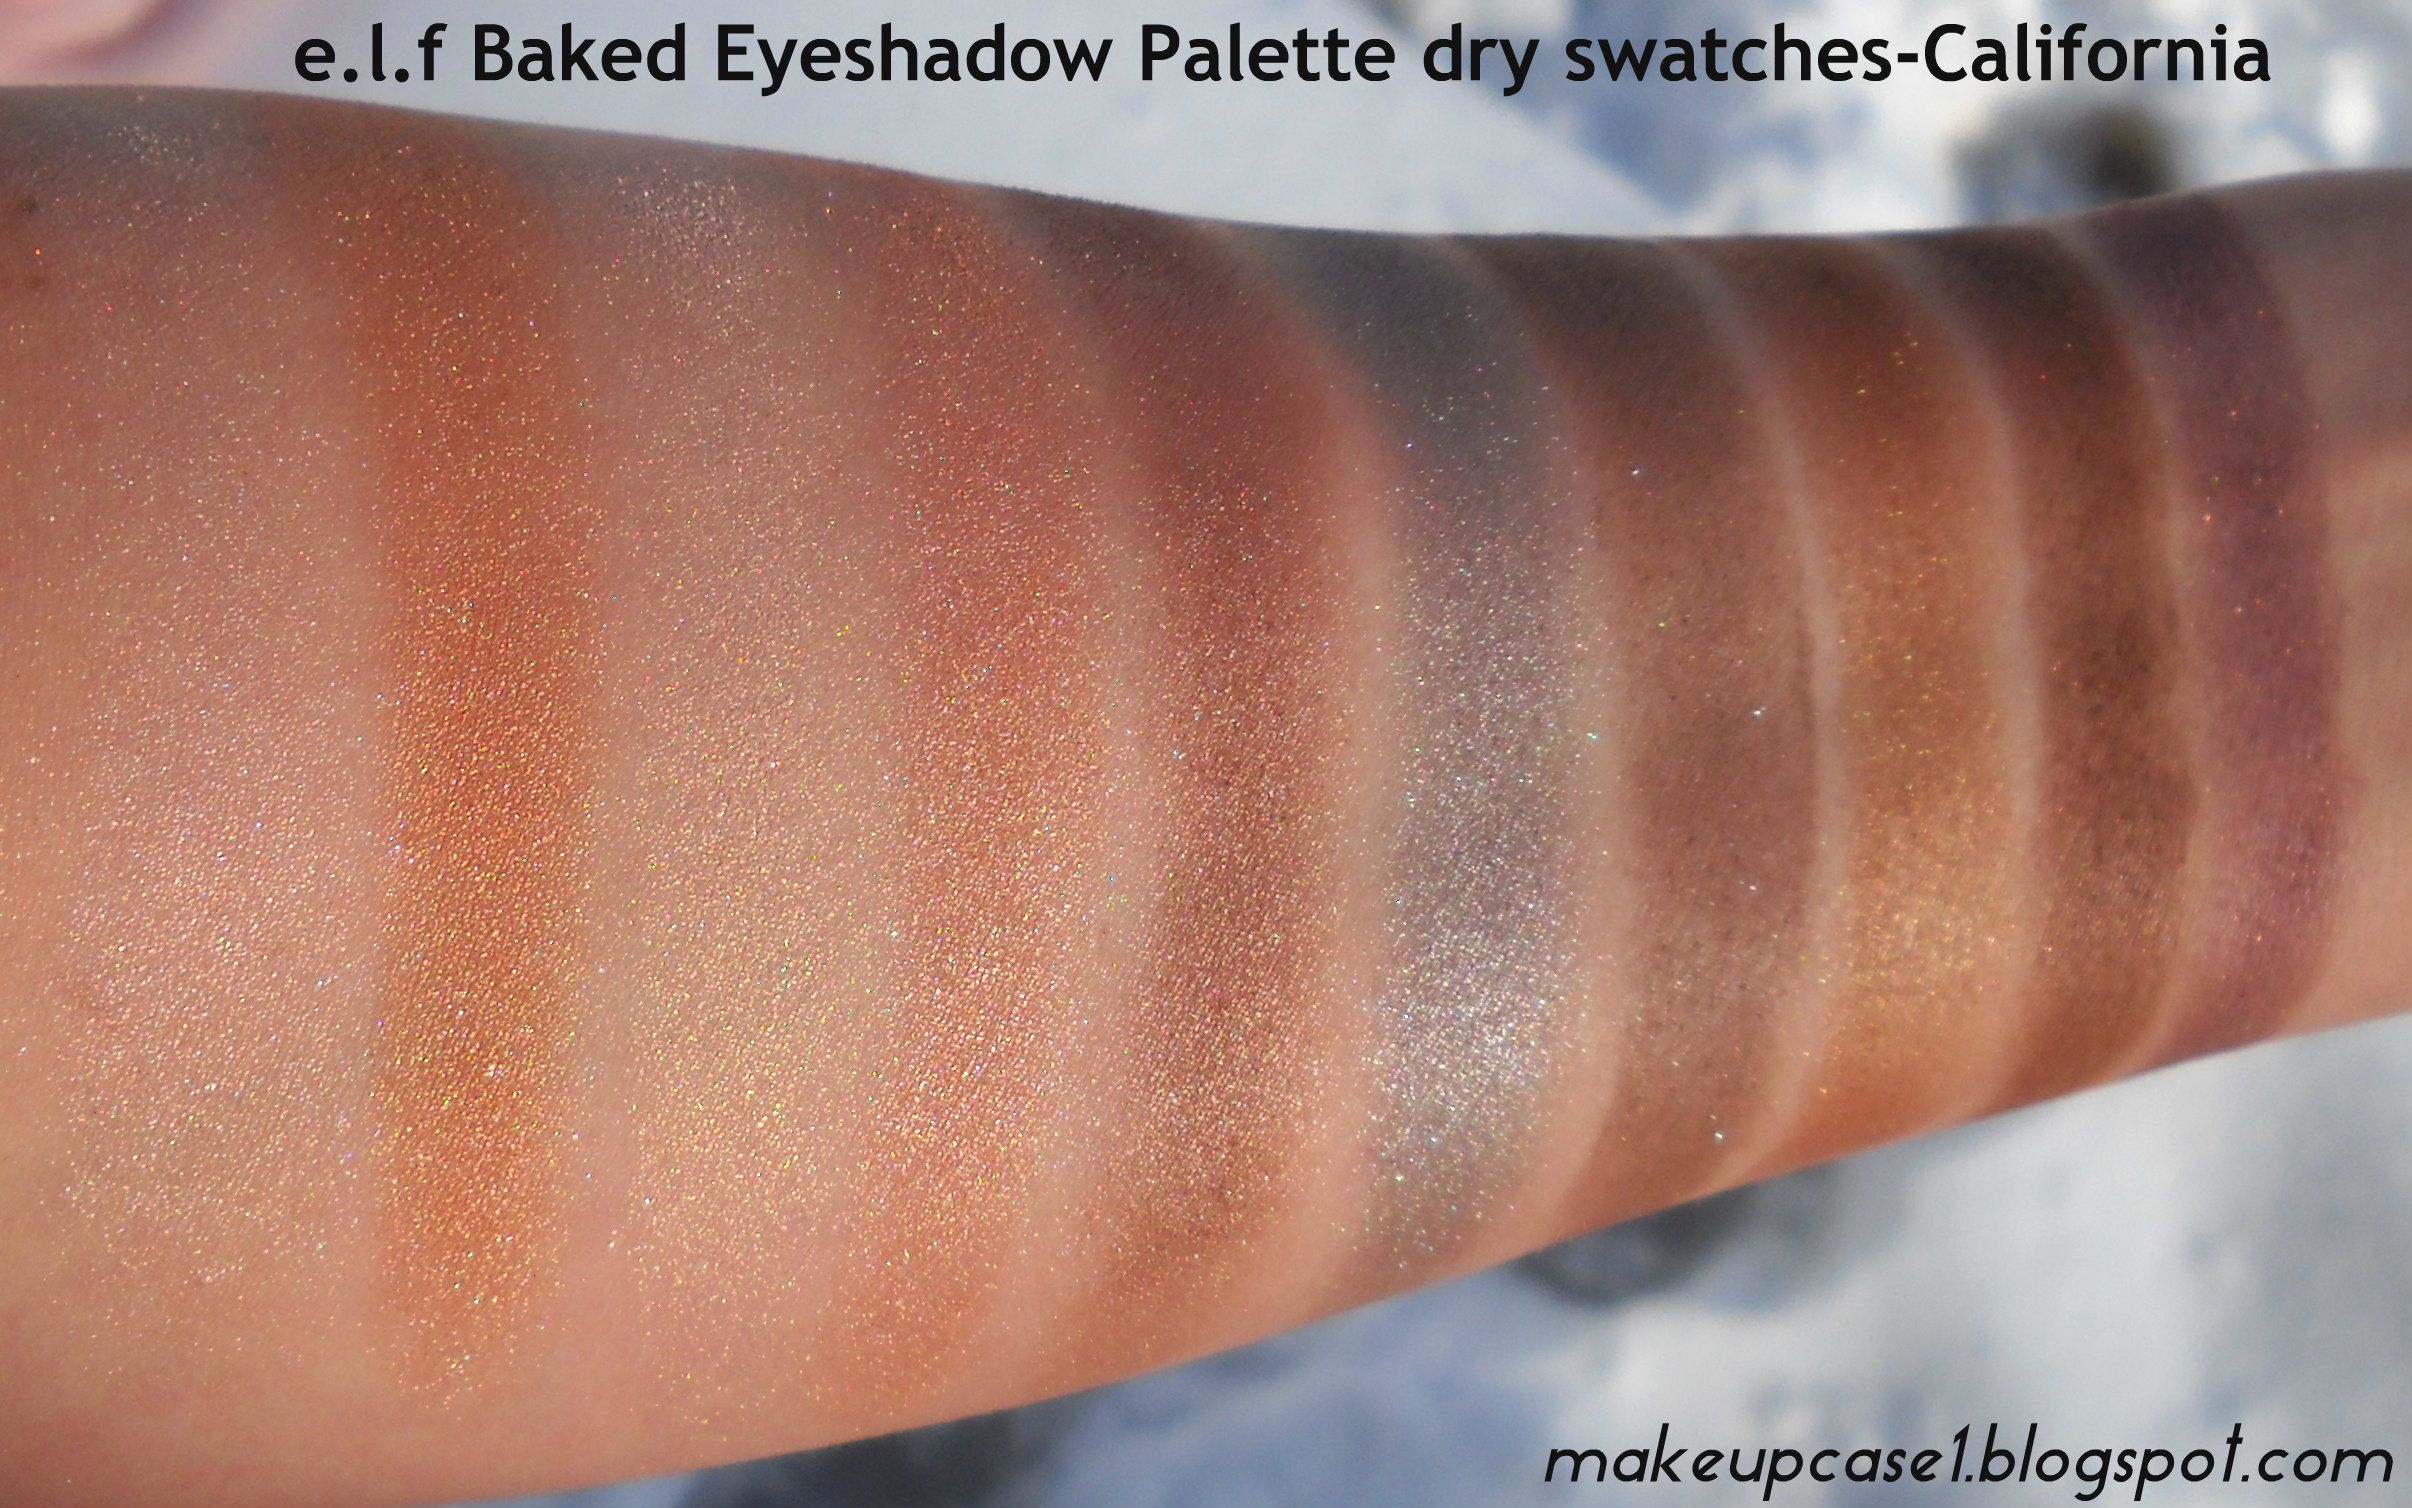 e.l.f Baked Eyeshadow Palette-California-Dry Swatches.